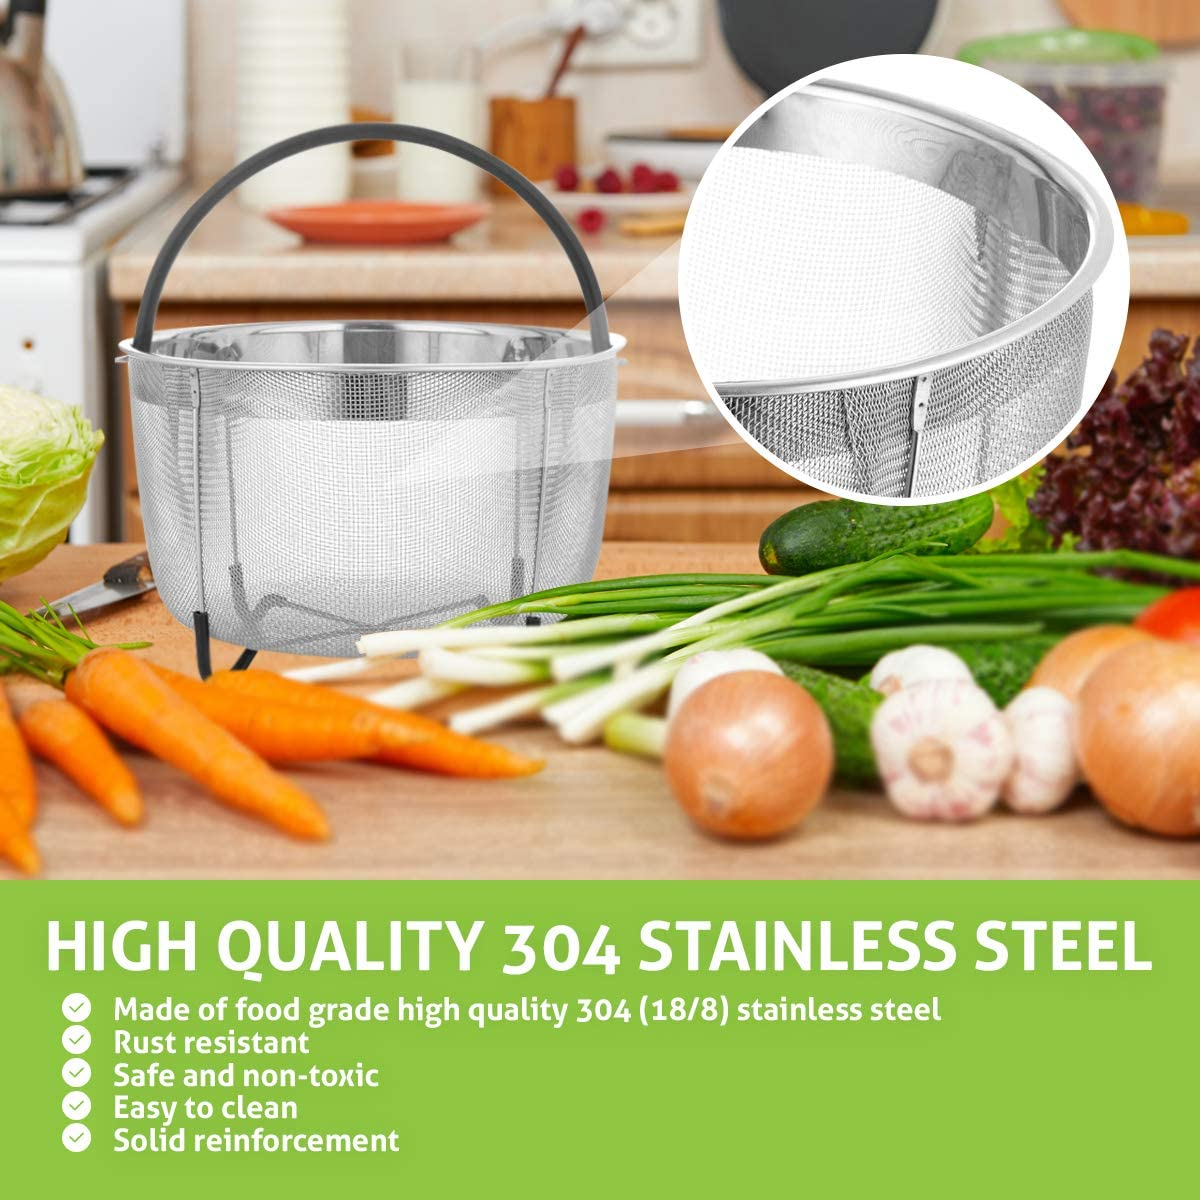 3 Quart Chef/'s Star Kitchen Steamer Basket /& Strainer Excellent For Eggs Vegetables 2 Silicone Sealing Rings For Instant Pot Noodles Etc Instant Pot Pressure Cooker Compatible Spaghetti